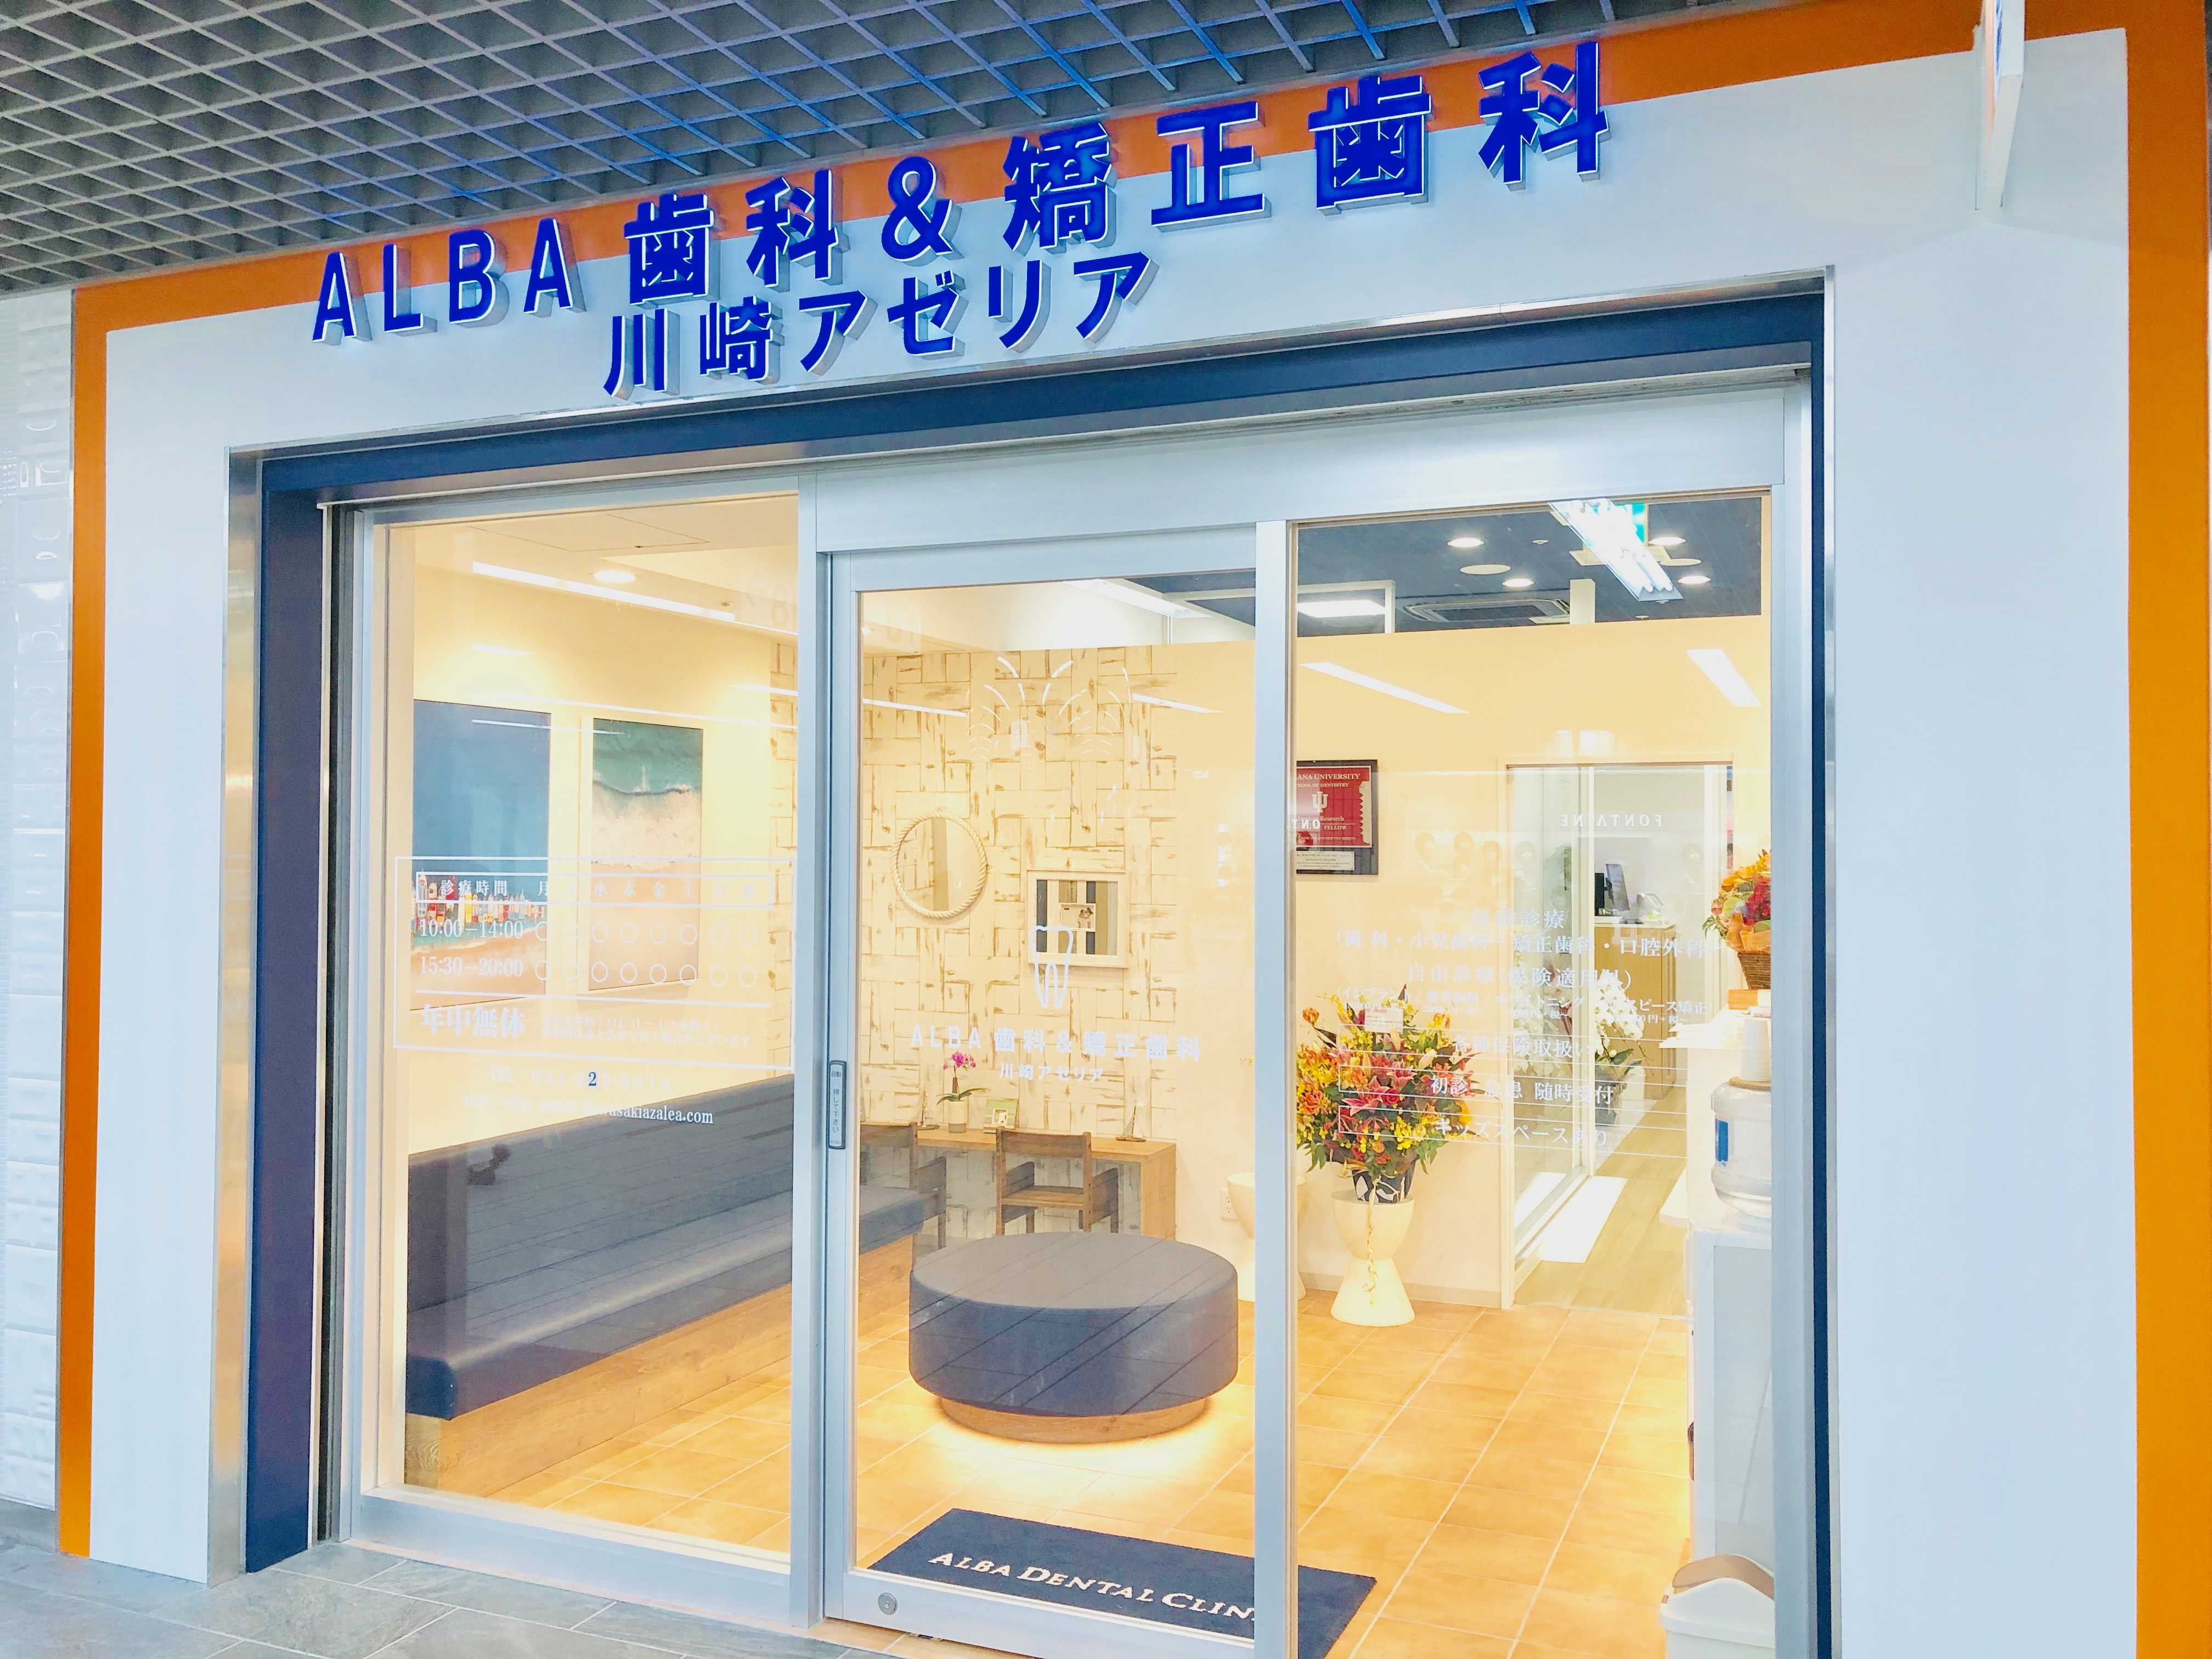 ALBA歯科&矯正歯科 川崎アゼリア